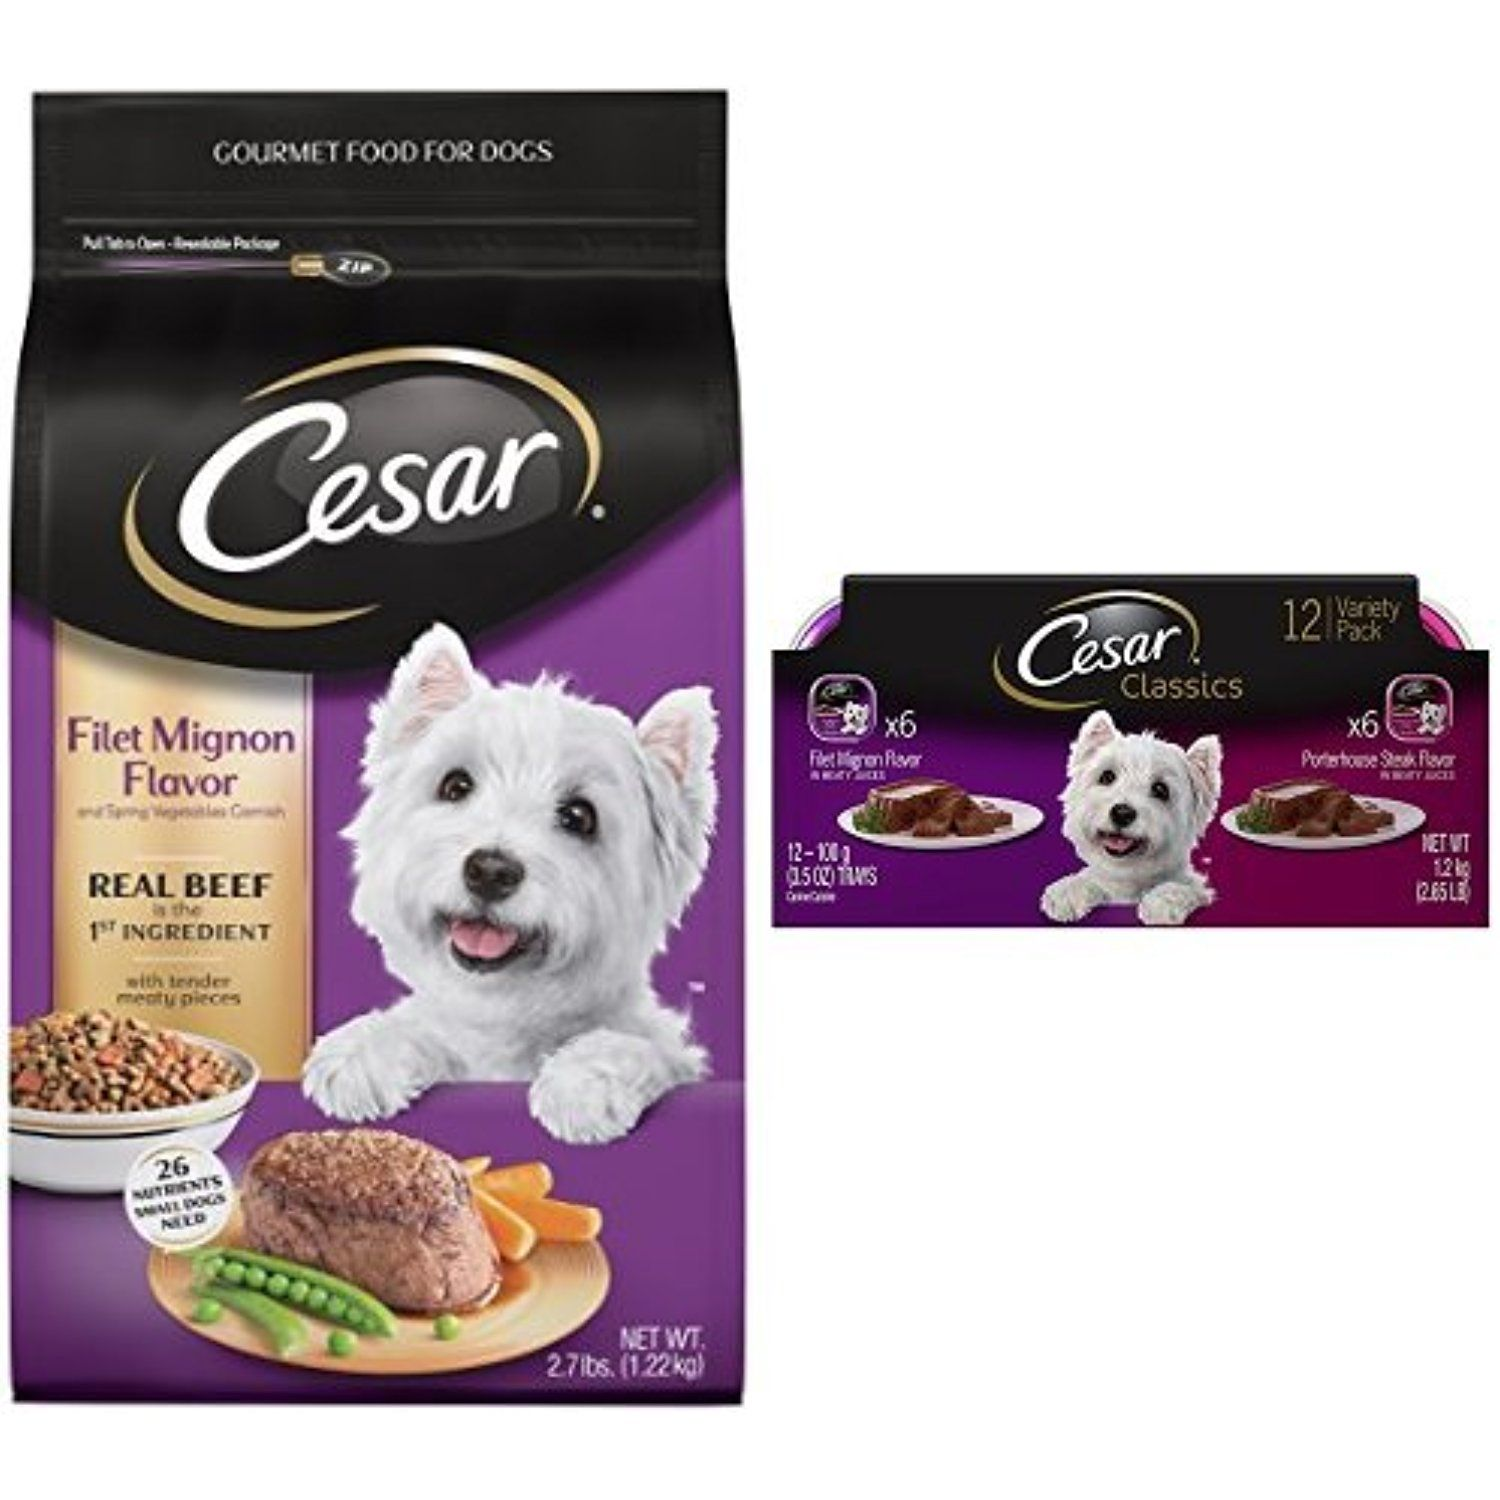 Cesar Small Dog Food Variety Pack With 2 7 Lb Bag Of Filet Mignon